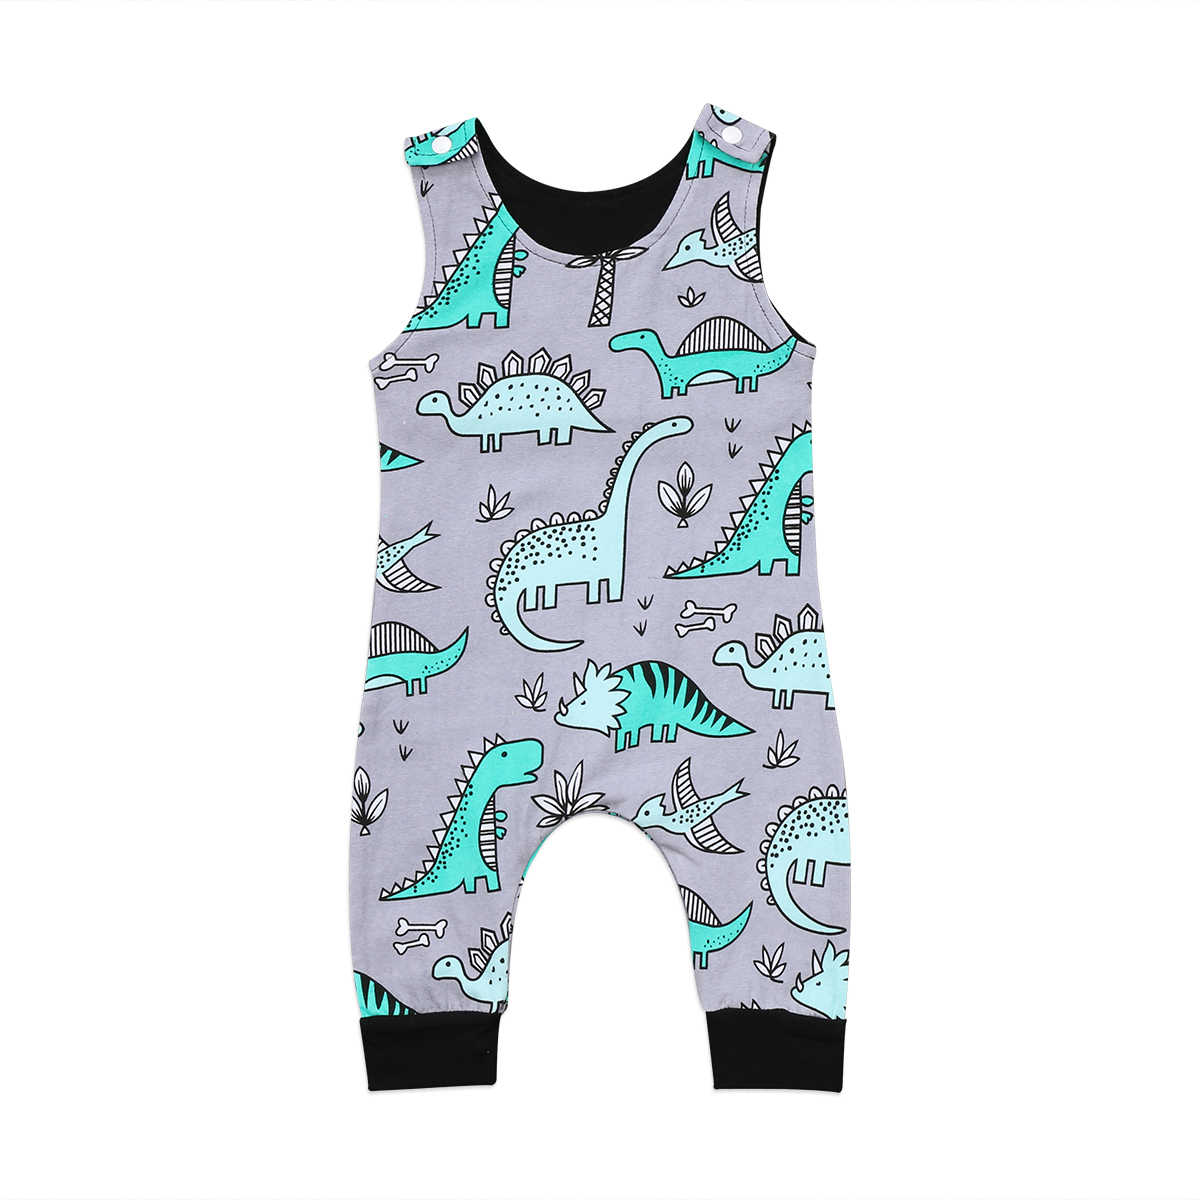 3eeefe9e17e Baby Rompers Fashion Newborn Baby Boy Romper Sleevelss Jumpsuit Clothes  Dinosaur Baby Clothes Cotton Outfits 0